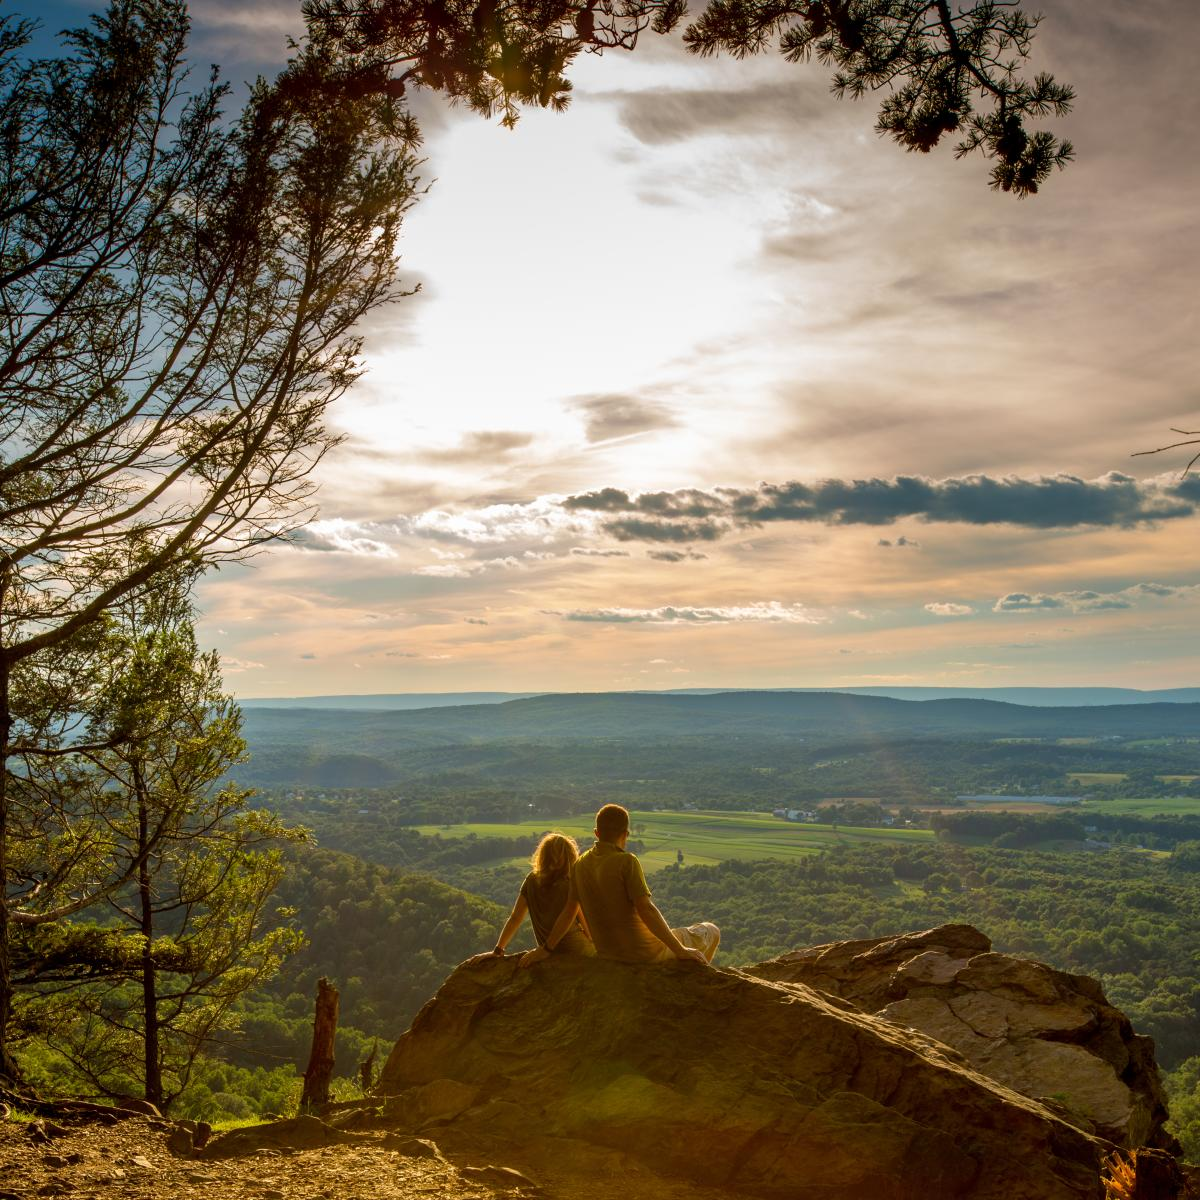 Couple at overlook at Hawk Rock on the Appalachian Trail Harrisburg, PA Area